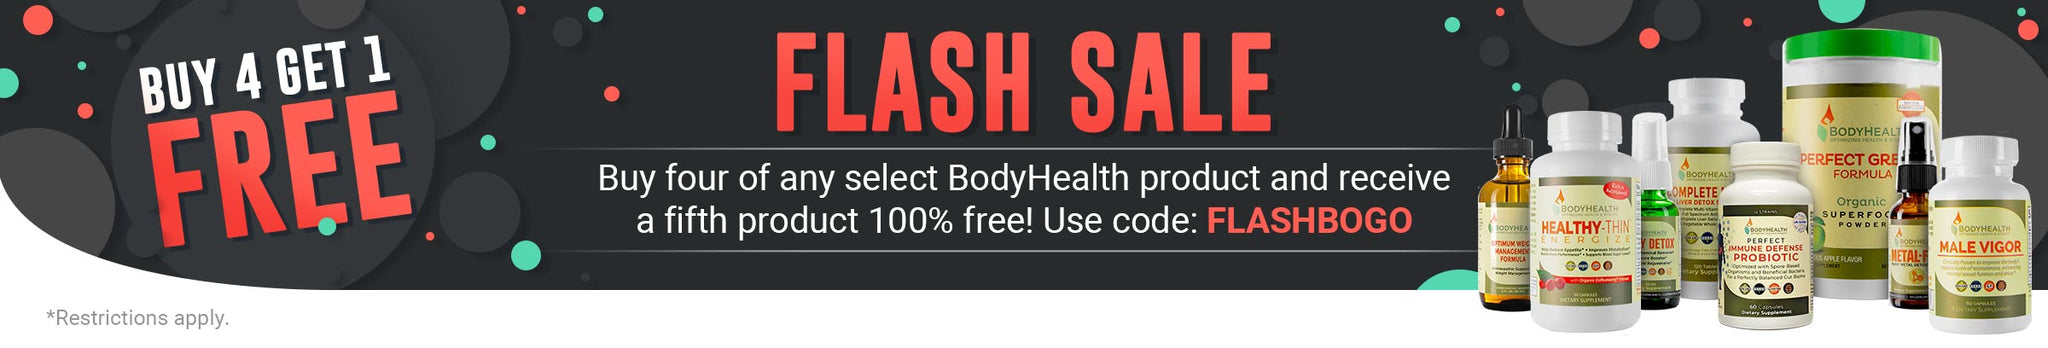 Flash Sale - Buy 4 Get 1 Free for 20% savings on these amazing products!